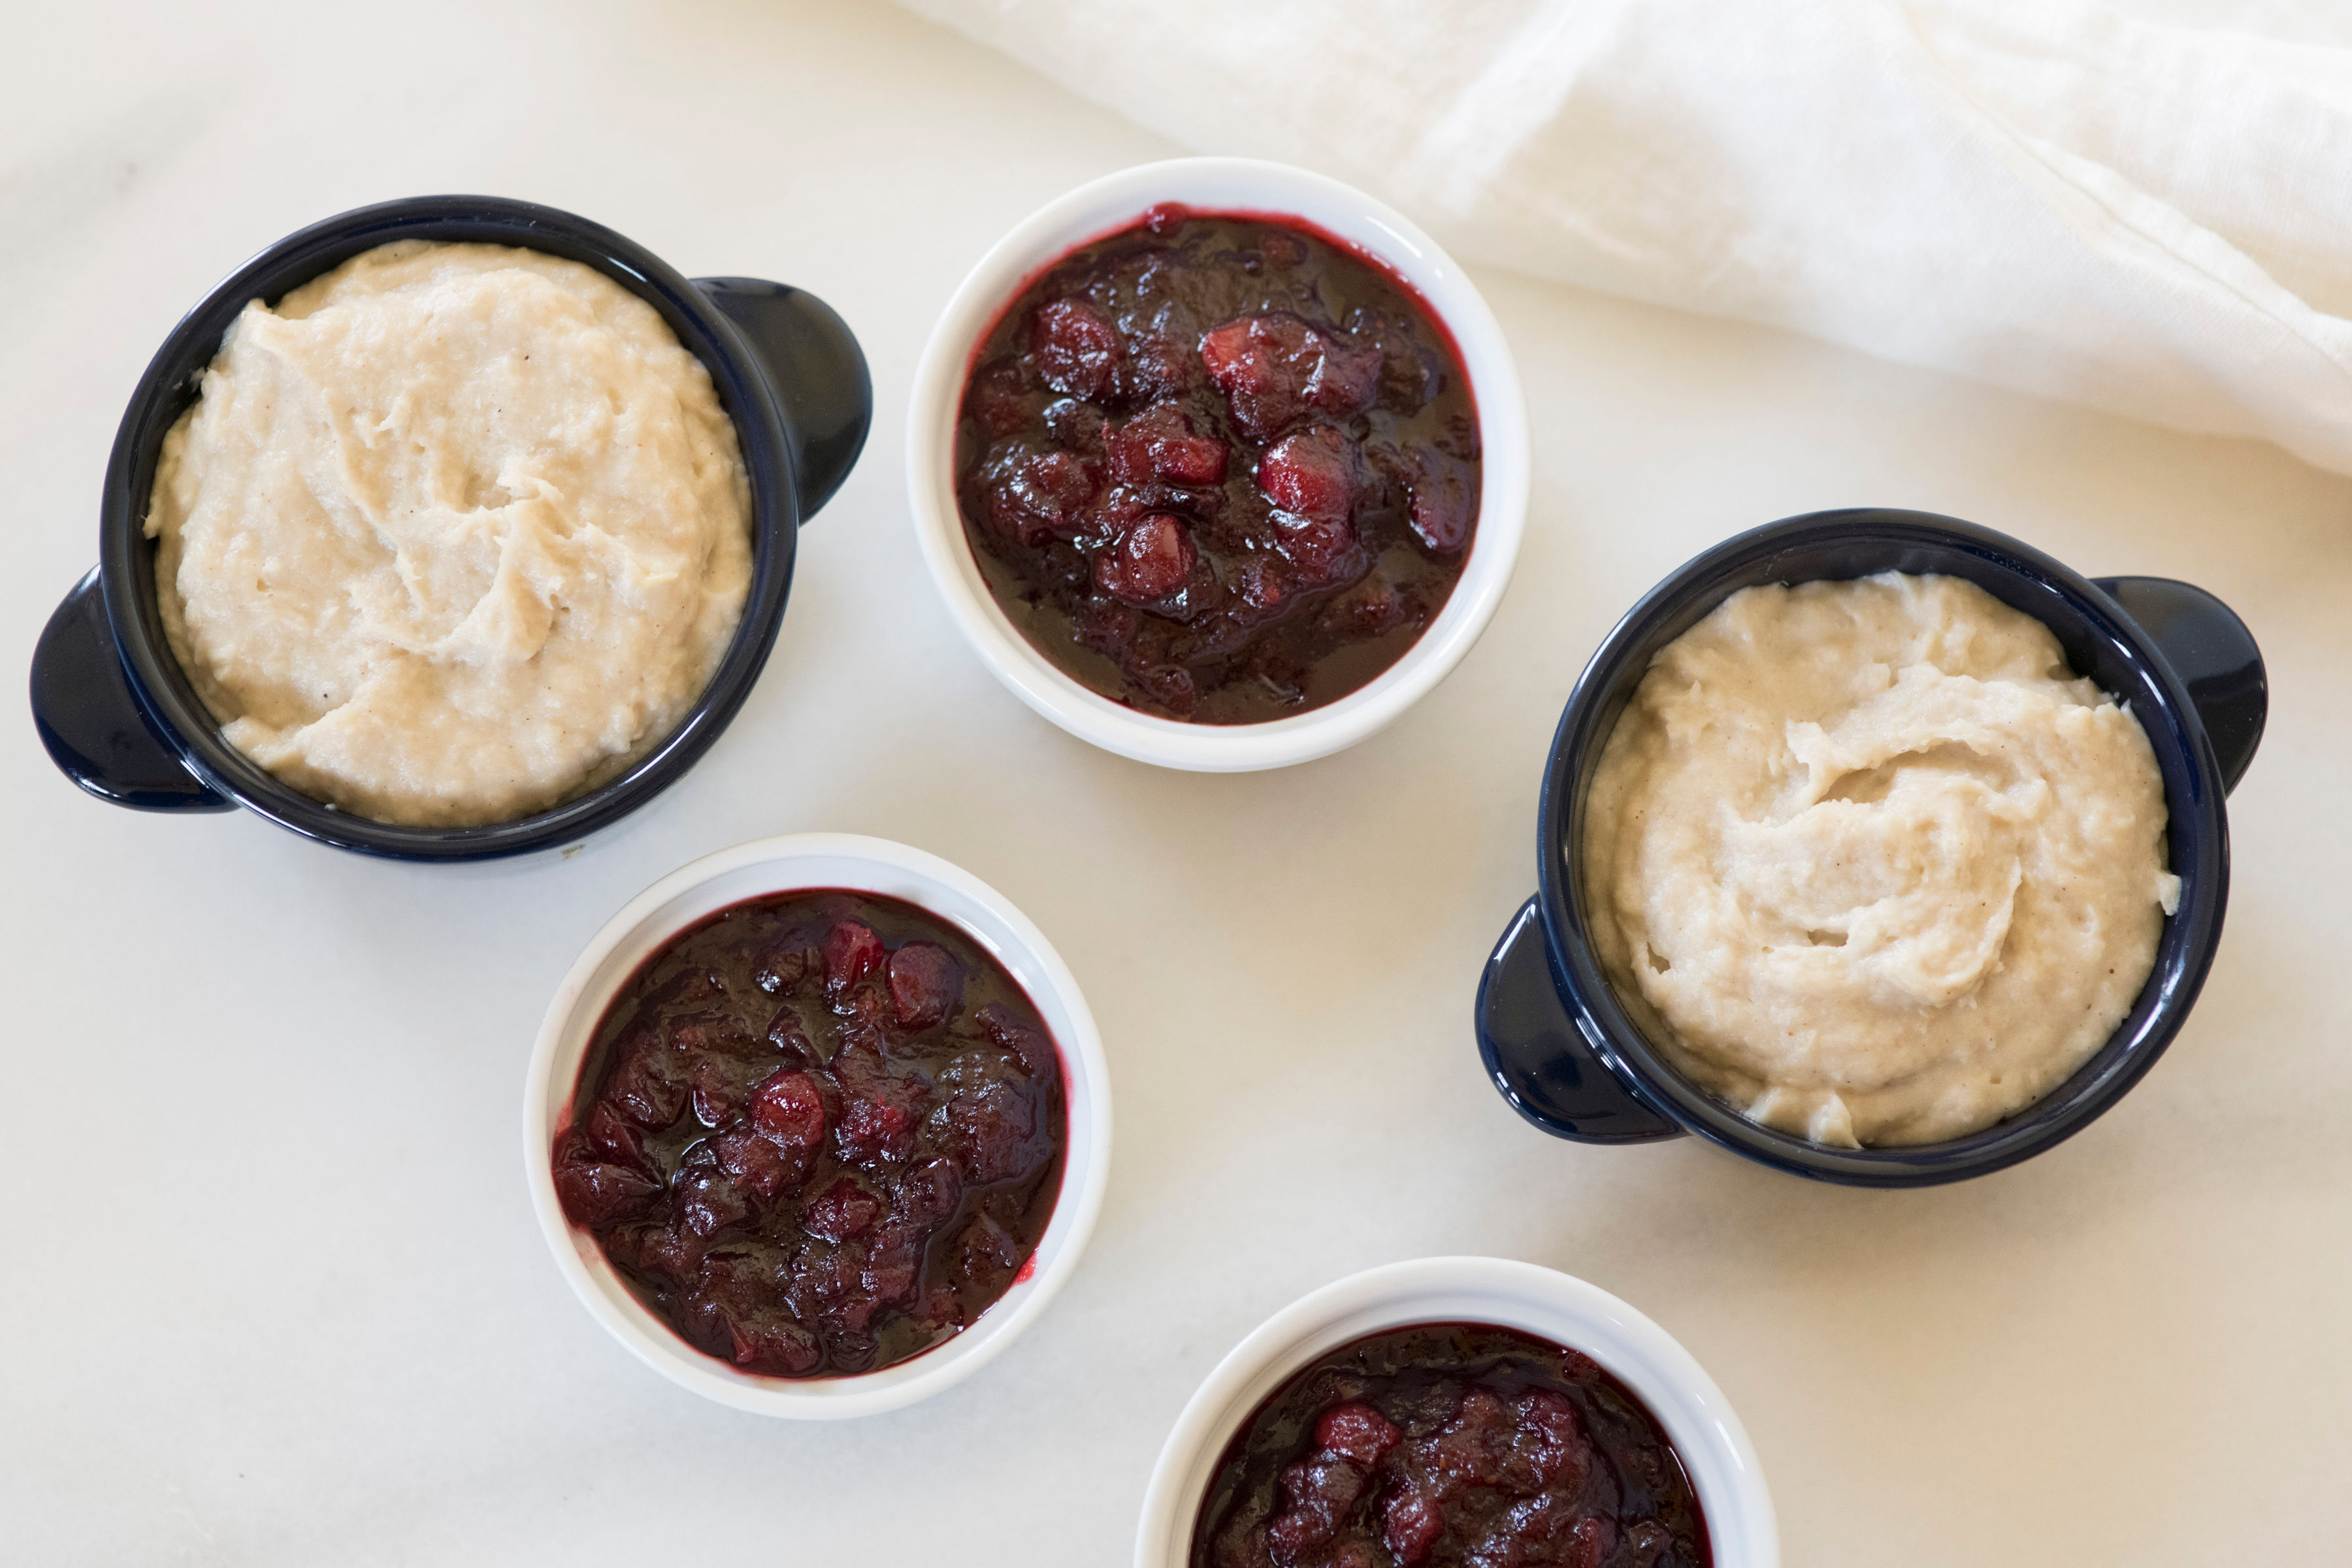 Savor The Sides With Whipped Parsnips And Homemade Cranberry Sauce Chesterfield Observer